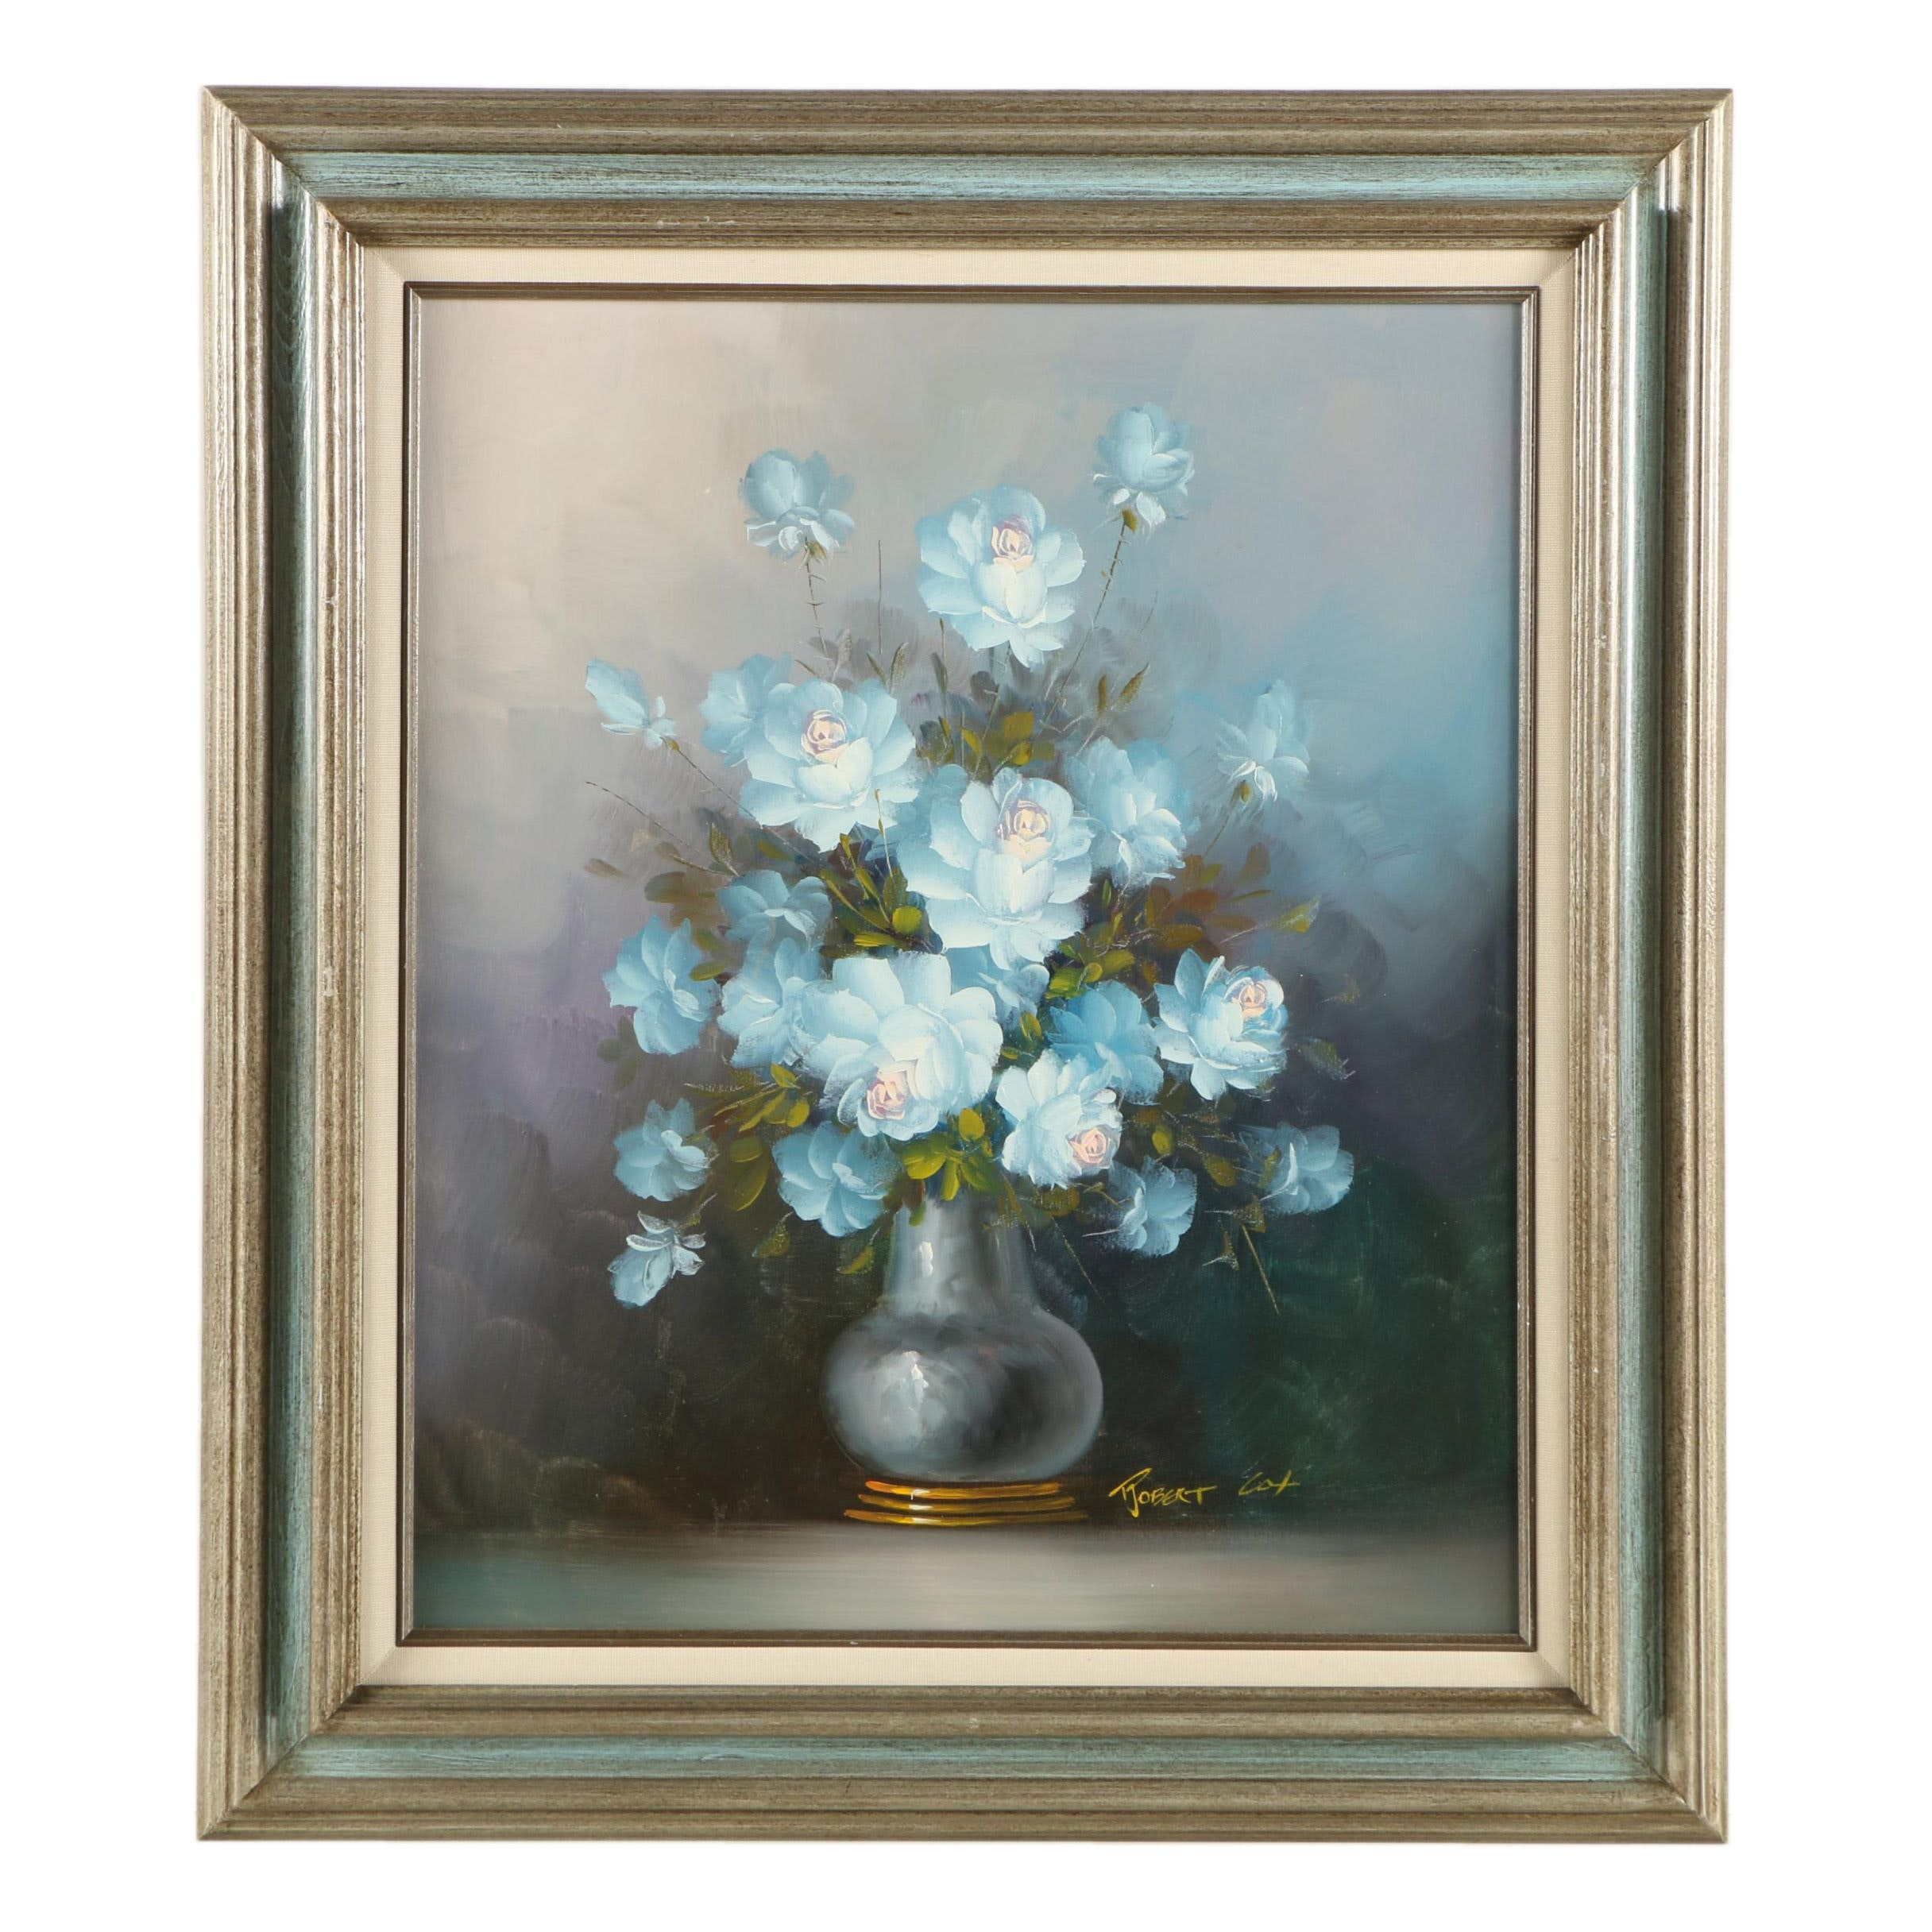 Robert Cox Oil Painting Floral Still Life